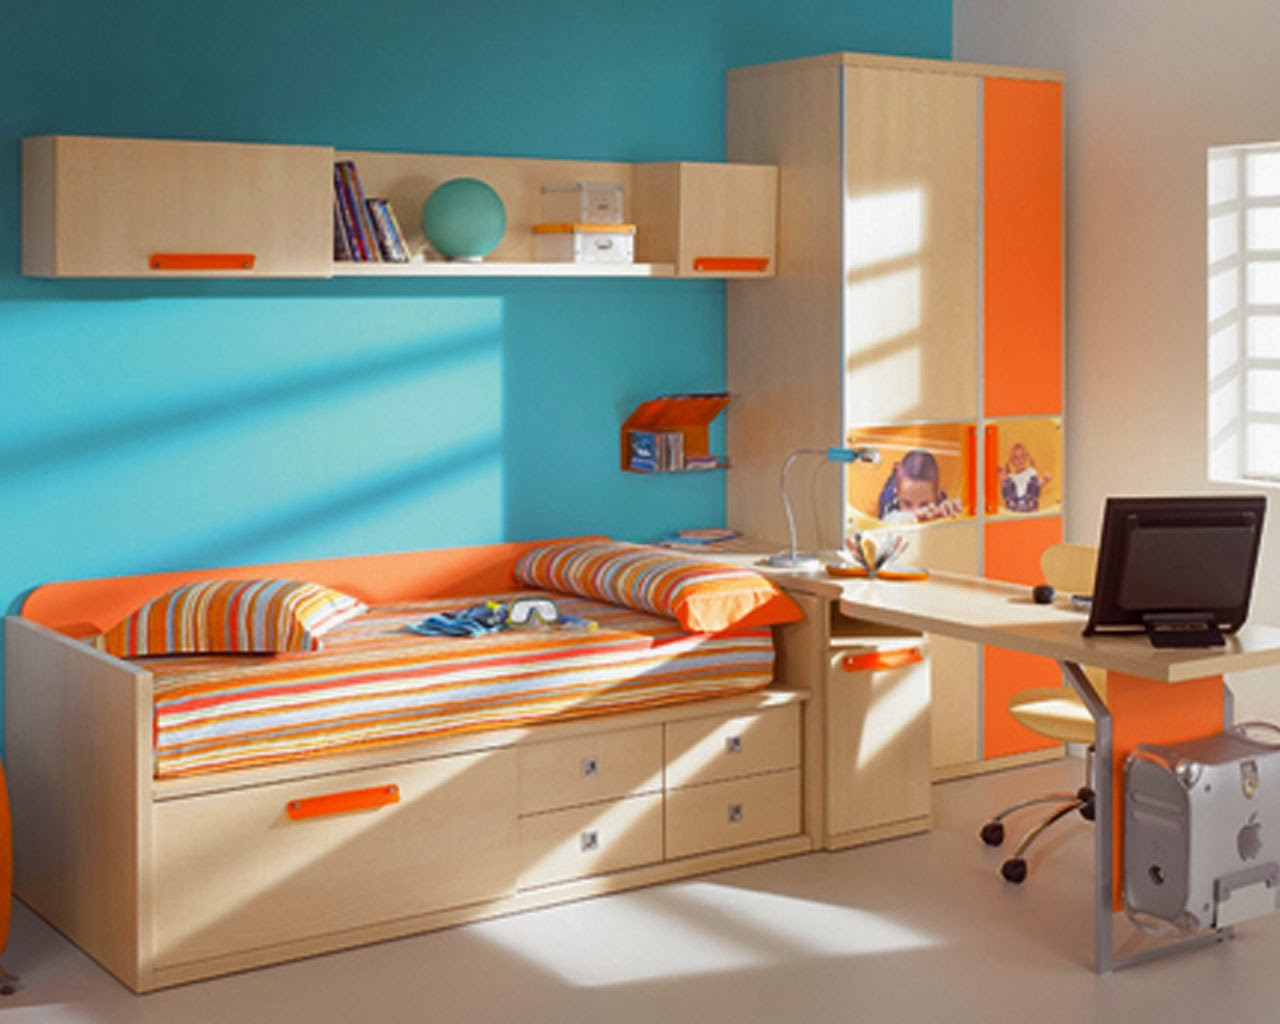 Creative Colorful Interior Kids Room Design with Storage Space